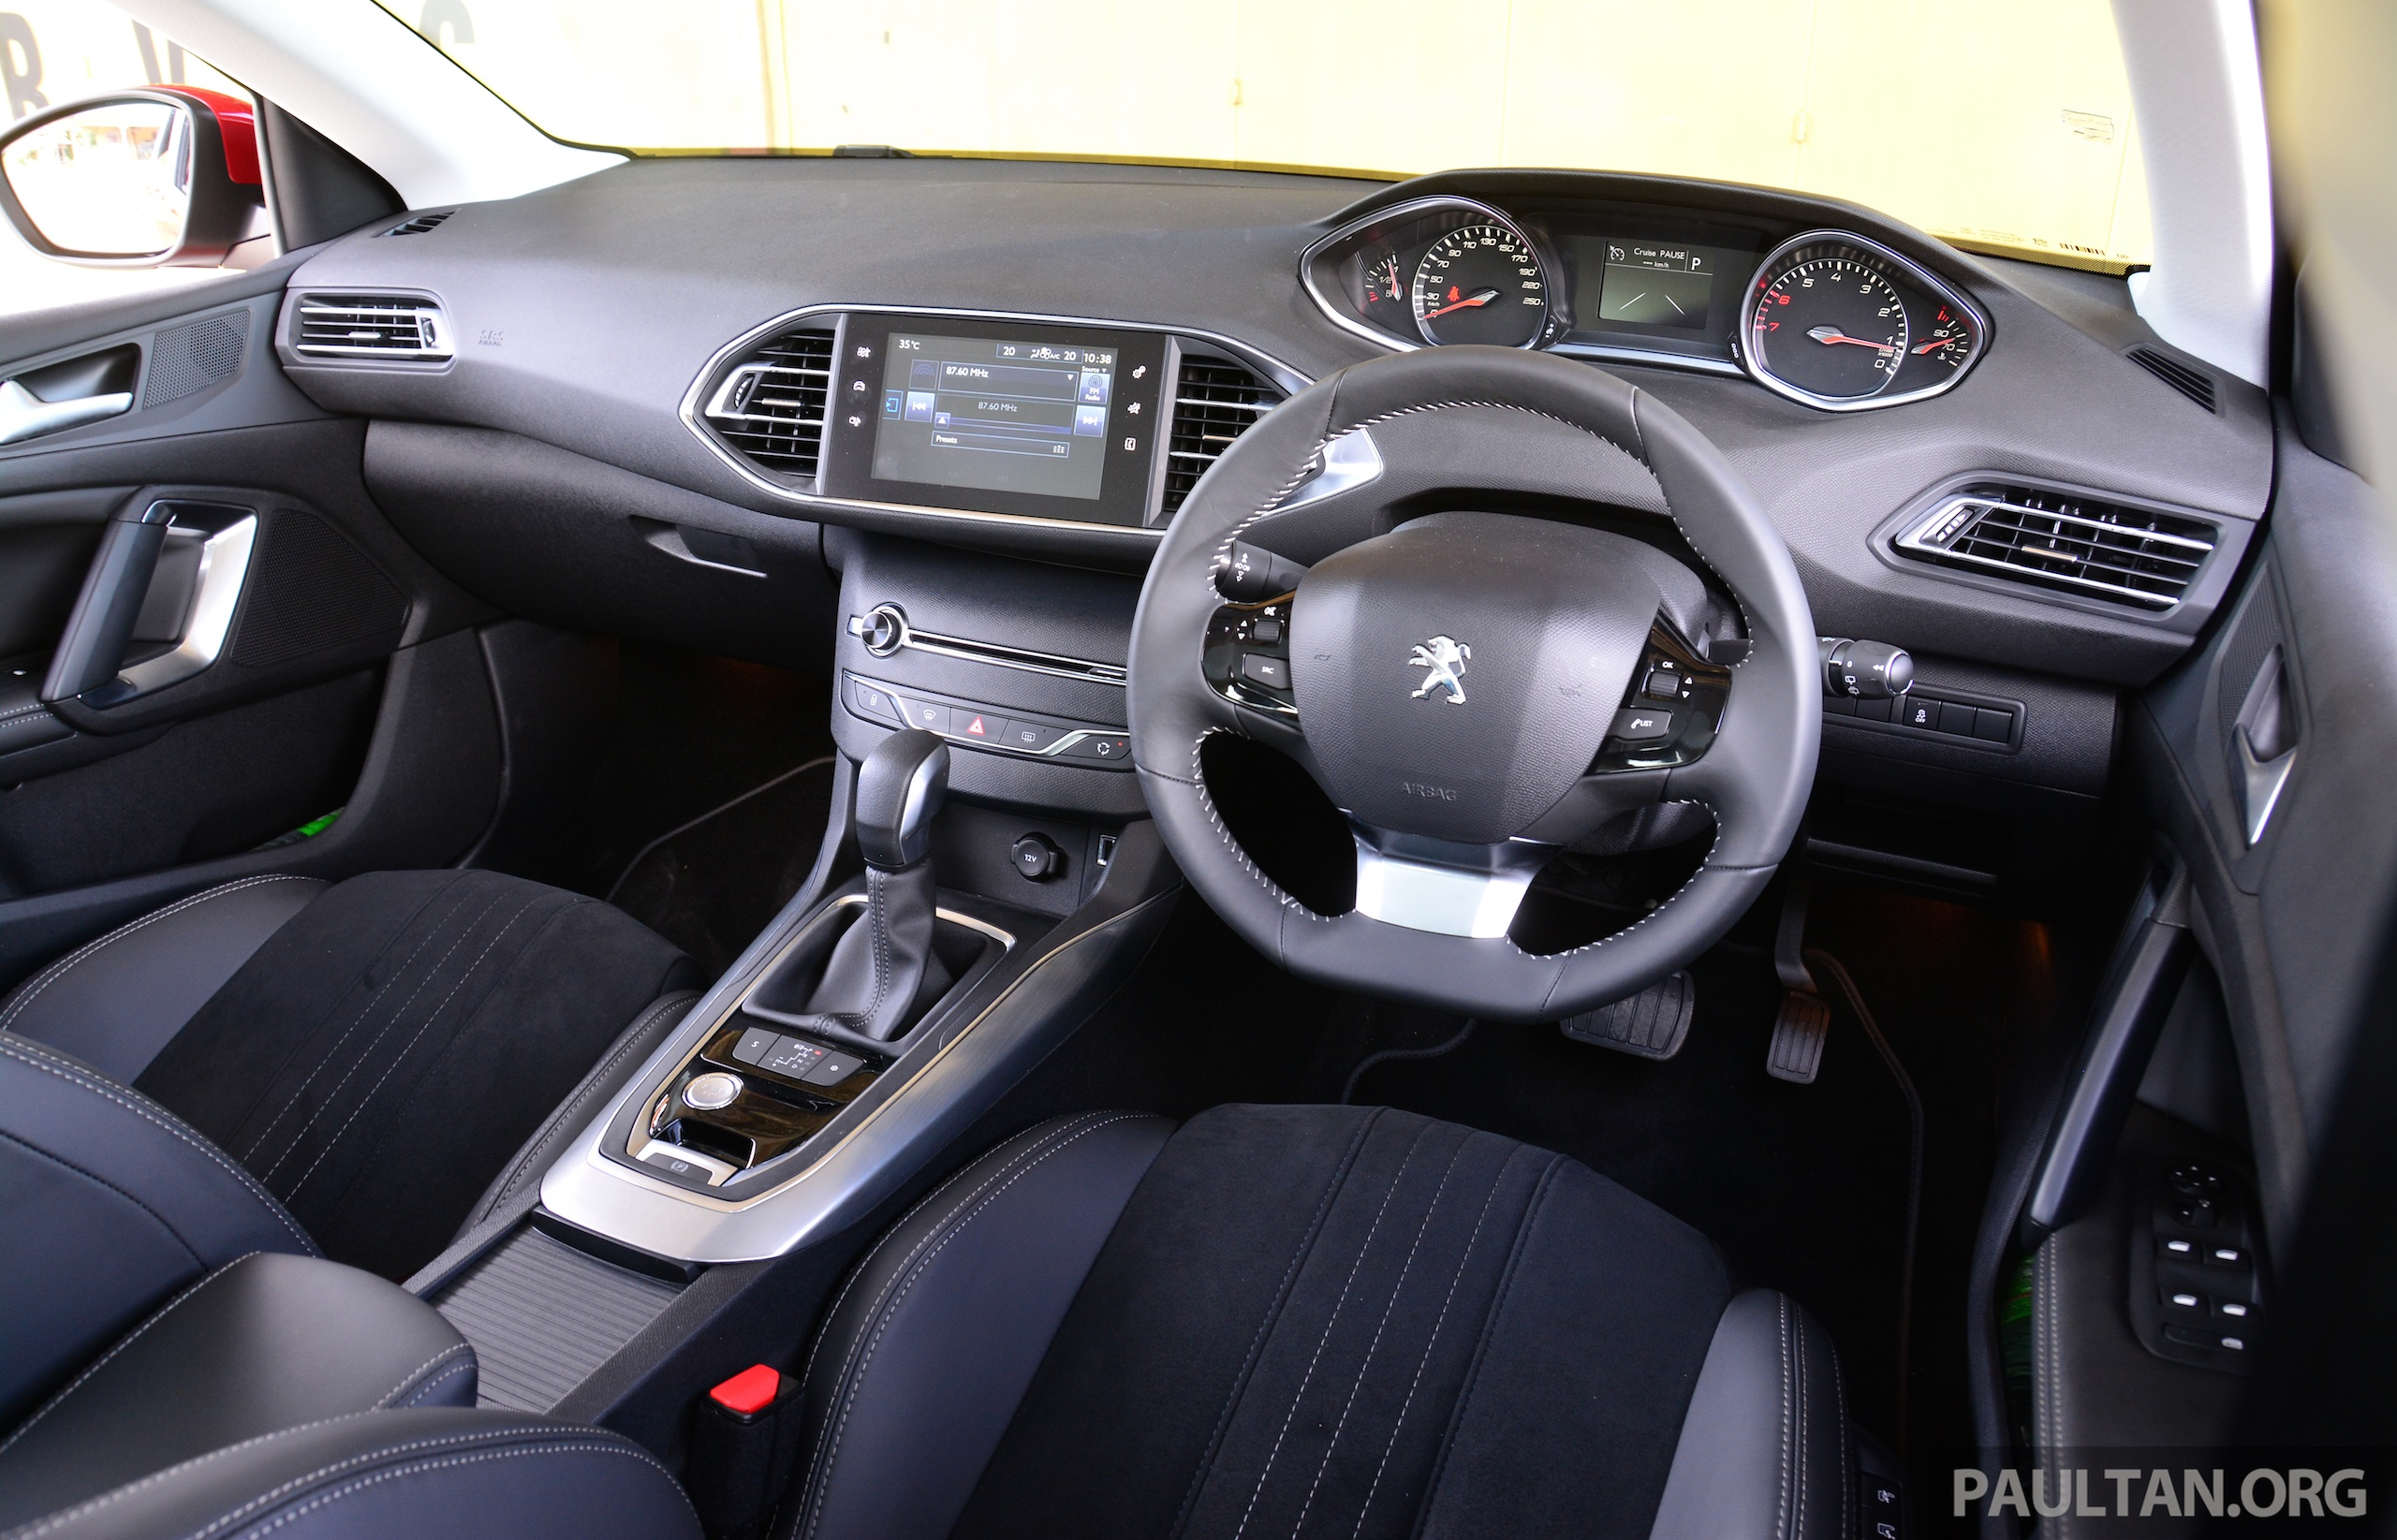 Driven 2015 Peugeot 308 Thp 150 Tested In Malaysia Paul Tan Image